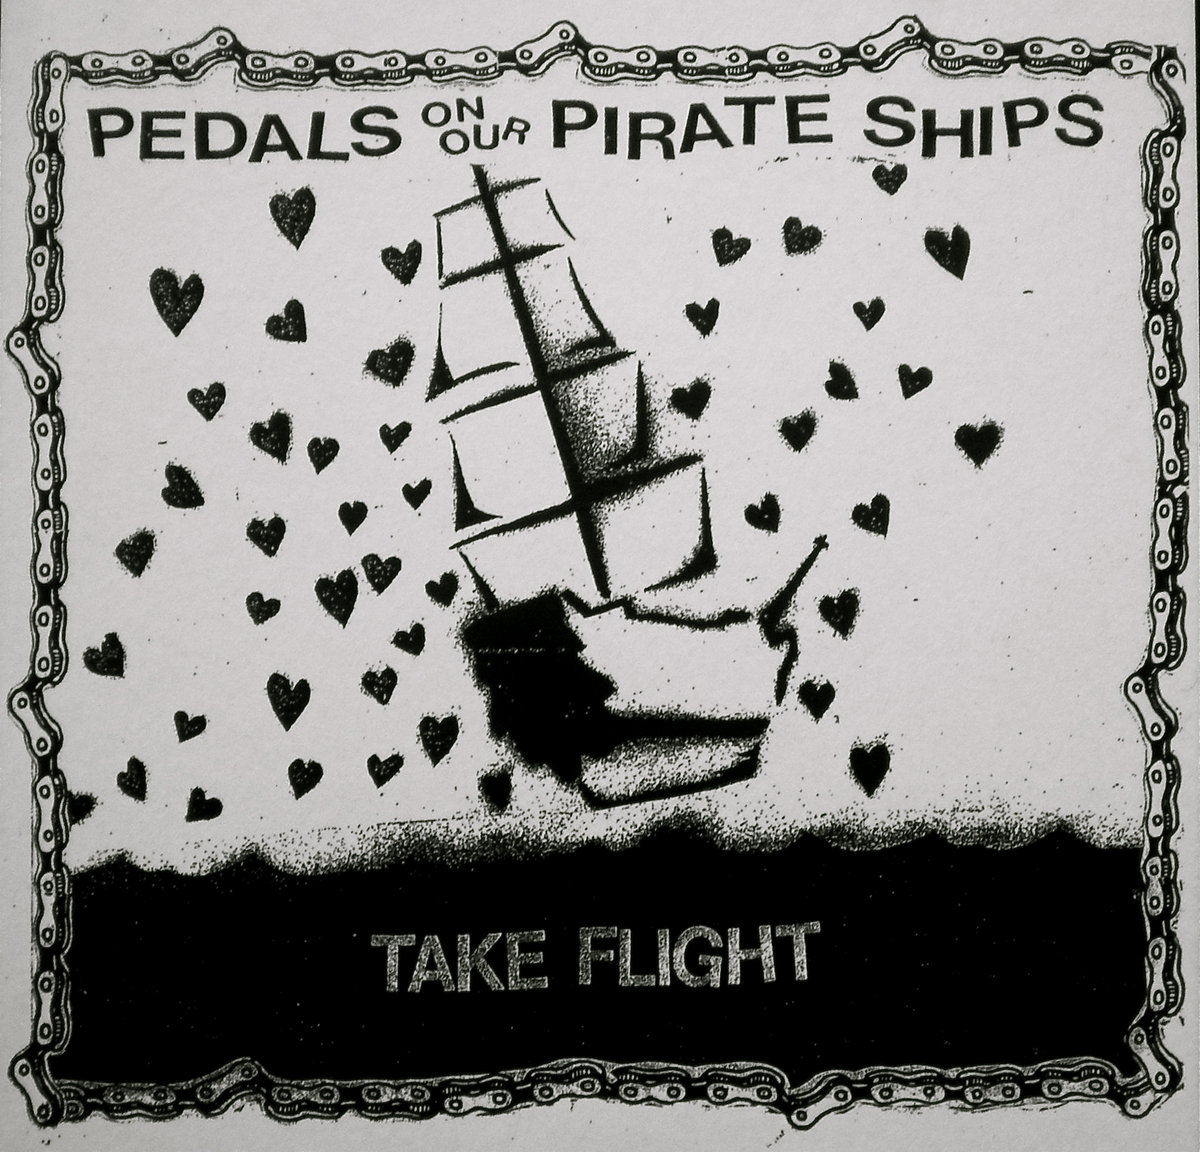 take flight | Pedals on our Pirate Ships